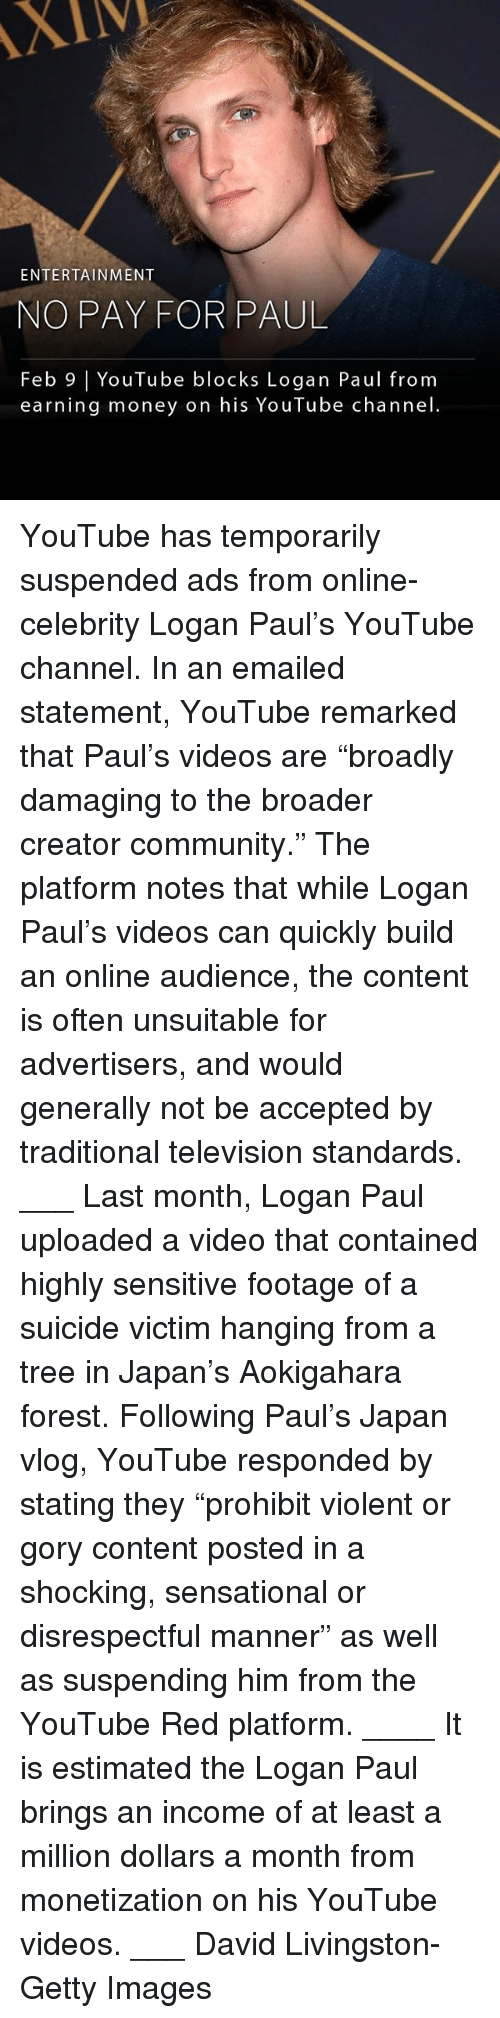 """Sensational: XIV  ENTERTAINMENT  NO PAY FOR PAUL  Feb 9   YouTube blocks Logan Paul from  earning money on his YouTube channel YouTube has temporarily suspended ads from online-celebrity Logan Paul's YouTube channel. In an emailed statement, YouTube remarked that Paul's videos are """"broadly damaging to the broader creator community."""" The platform notes that while Logan Paul's videos can quickly build an online audience, the content is often unsuitable for advertisers, and would generally not be accepted by traditional television standards. ___ Last month, Logan Paul uploaded a video that contained highly sensitive footage of a suicide victim hanging from a tree in Japan's Aokigahara forest. Following Paul's Japan vlog, YouTube responded by stating they """"prohibit violent or gory content posted in a shocking, sensational or disrespectful manner"""" as well as suspending him from the YouTube Red platform. ____ It is estimated the Logan Paul brings an income of at least a million dollars a month from monetization on his YouTube videos. ___ David Livingston-Getty Images"""